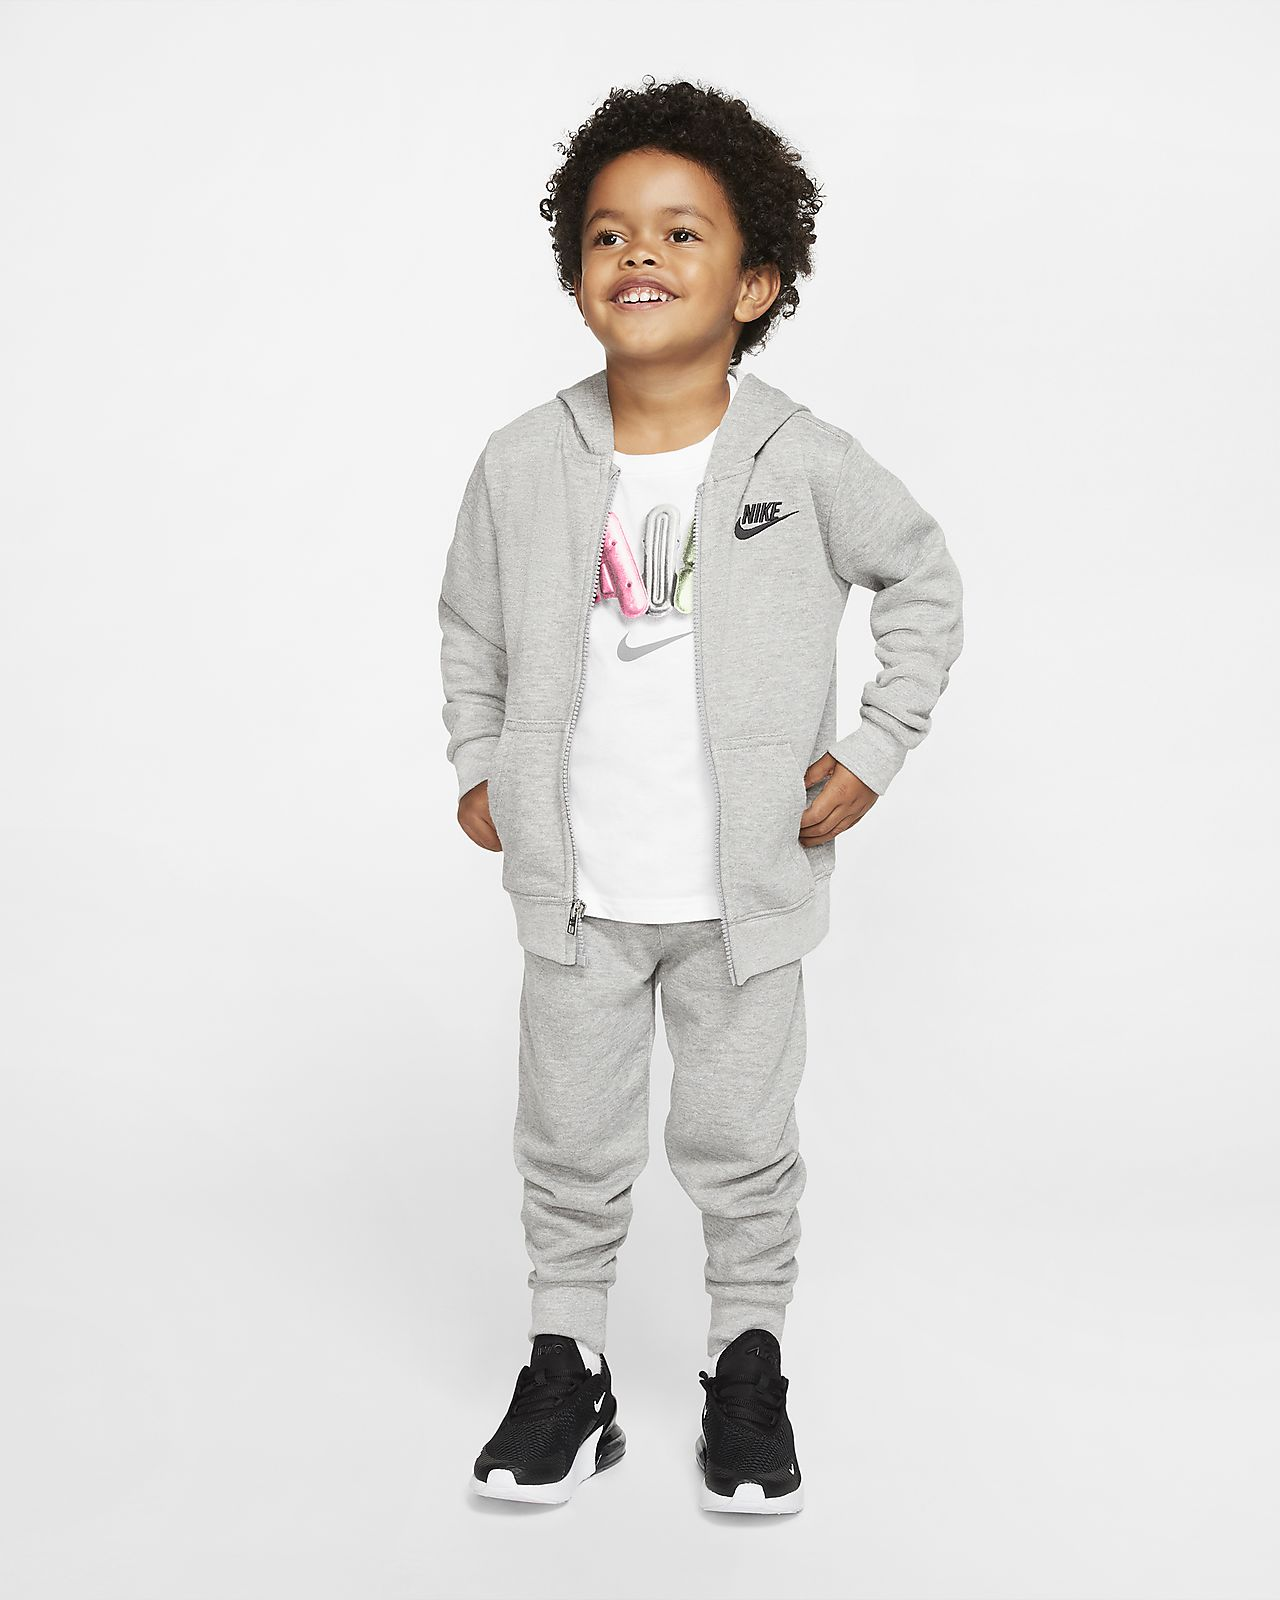 Nike Sportswear Toddler Hoodie and Joggers Set